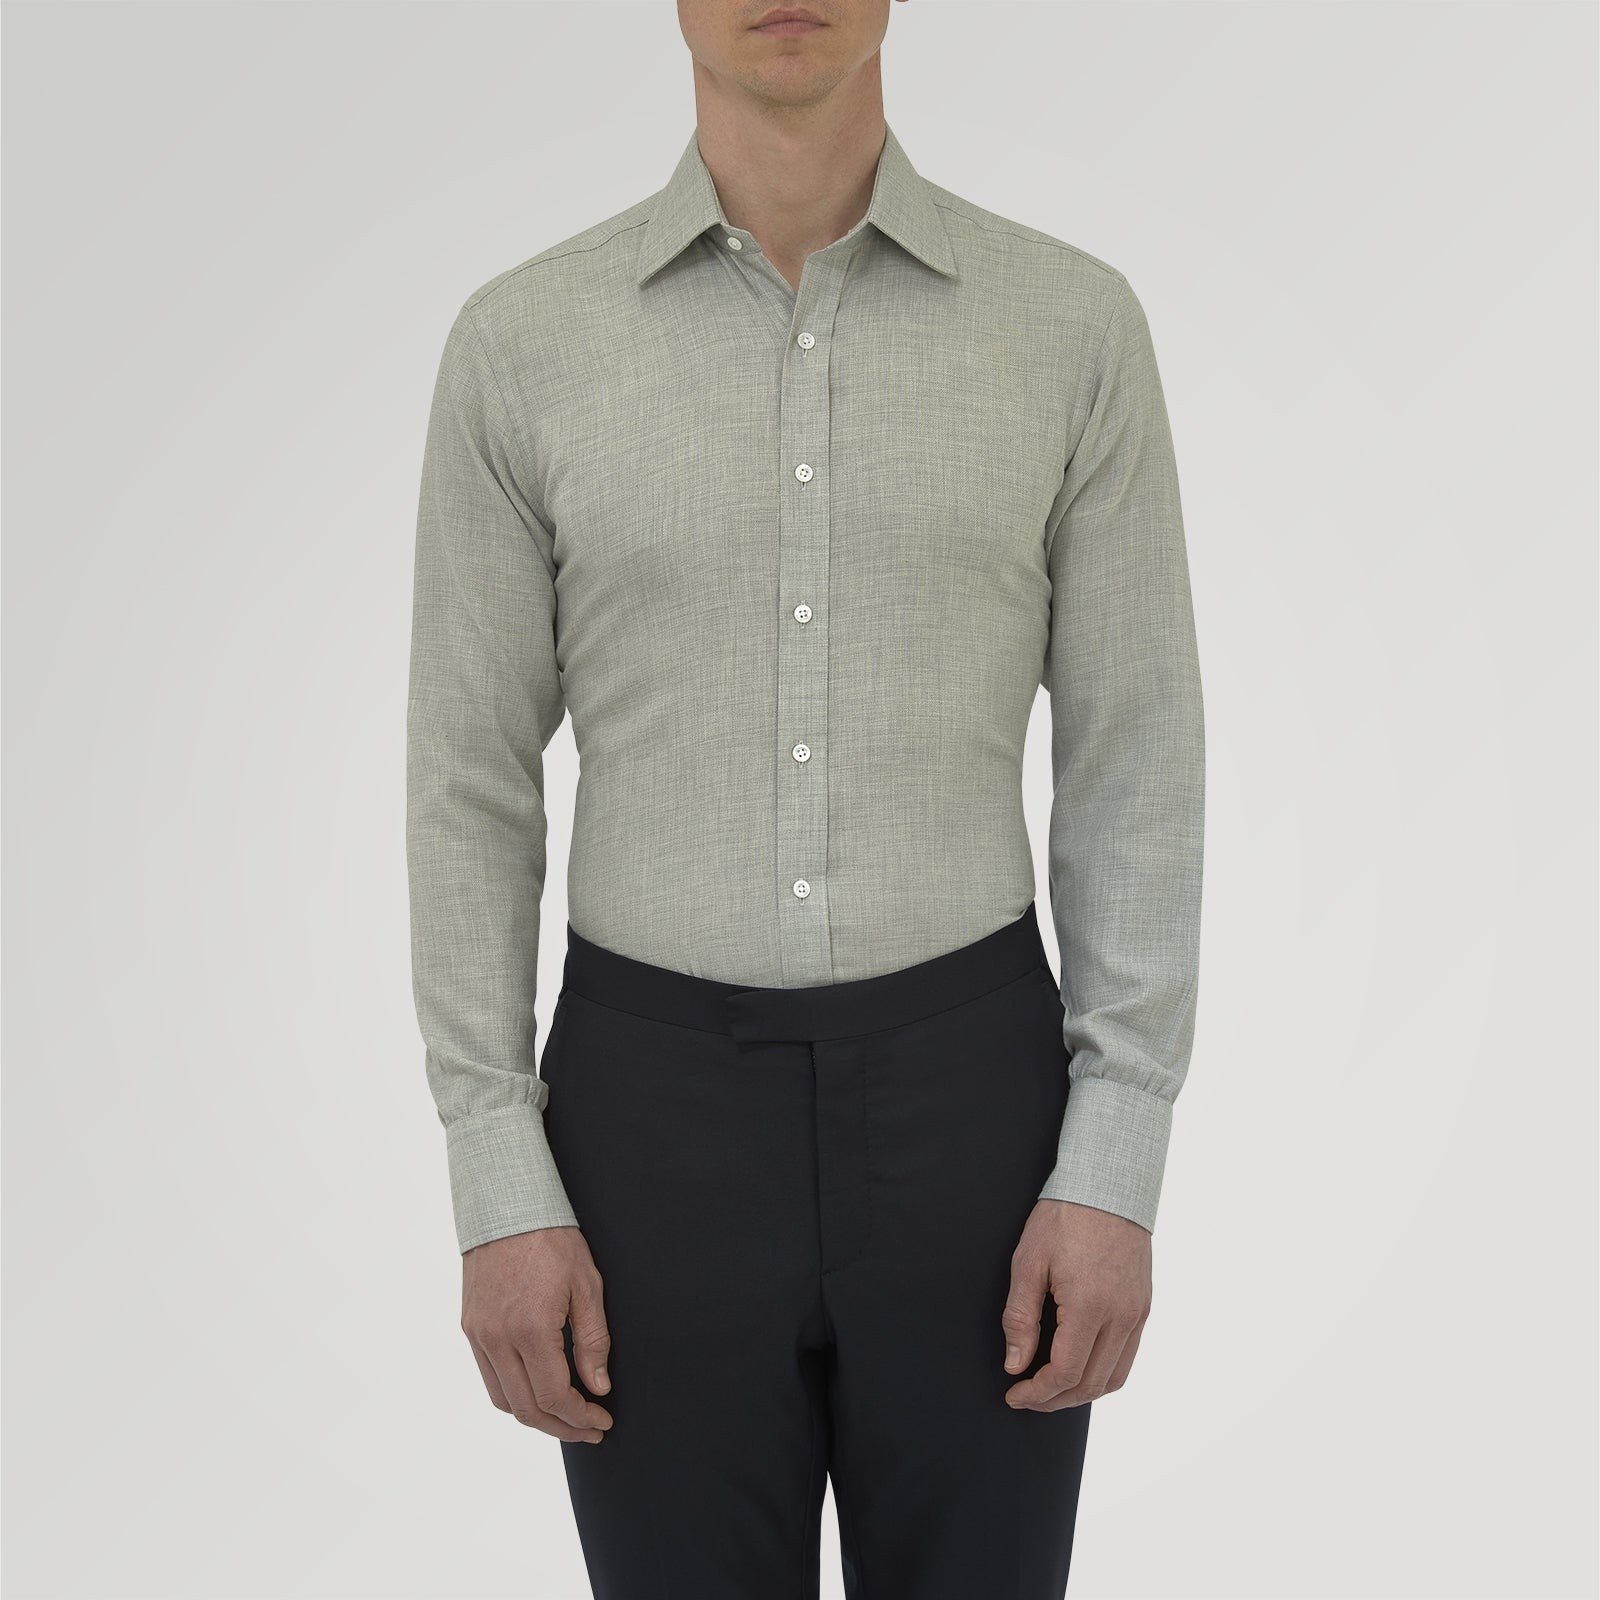 Grey Cashmere Blend Shirt with T&A Collar and 3-Button Cuffs